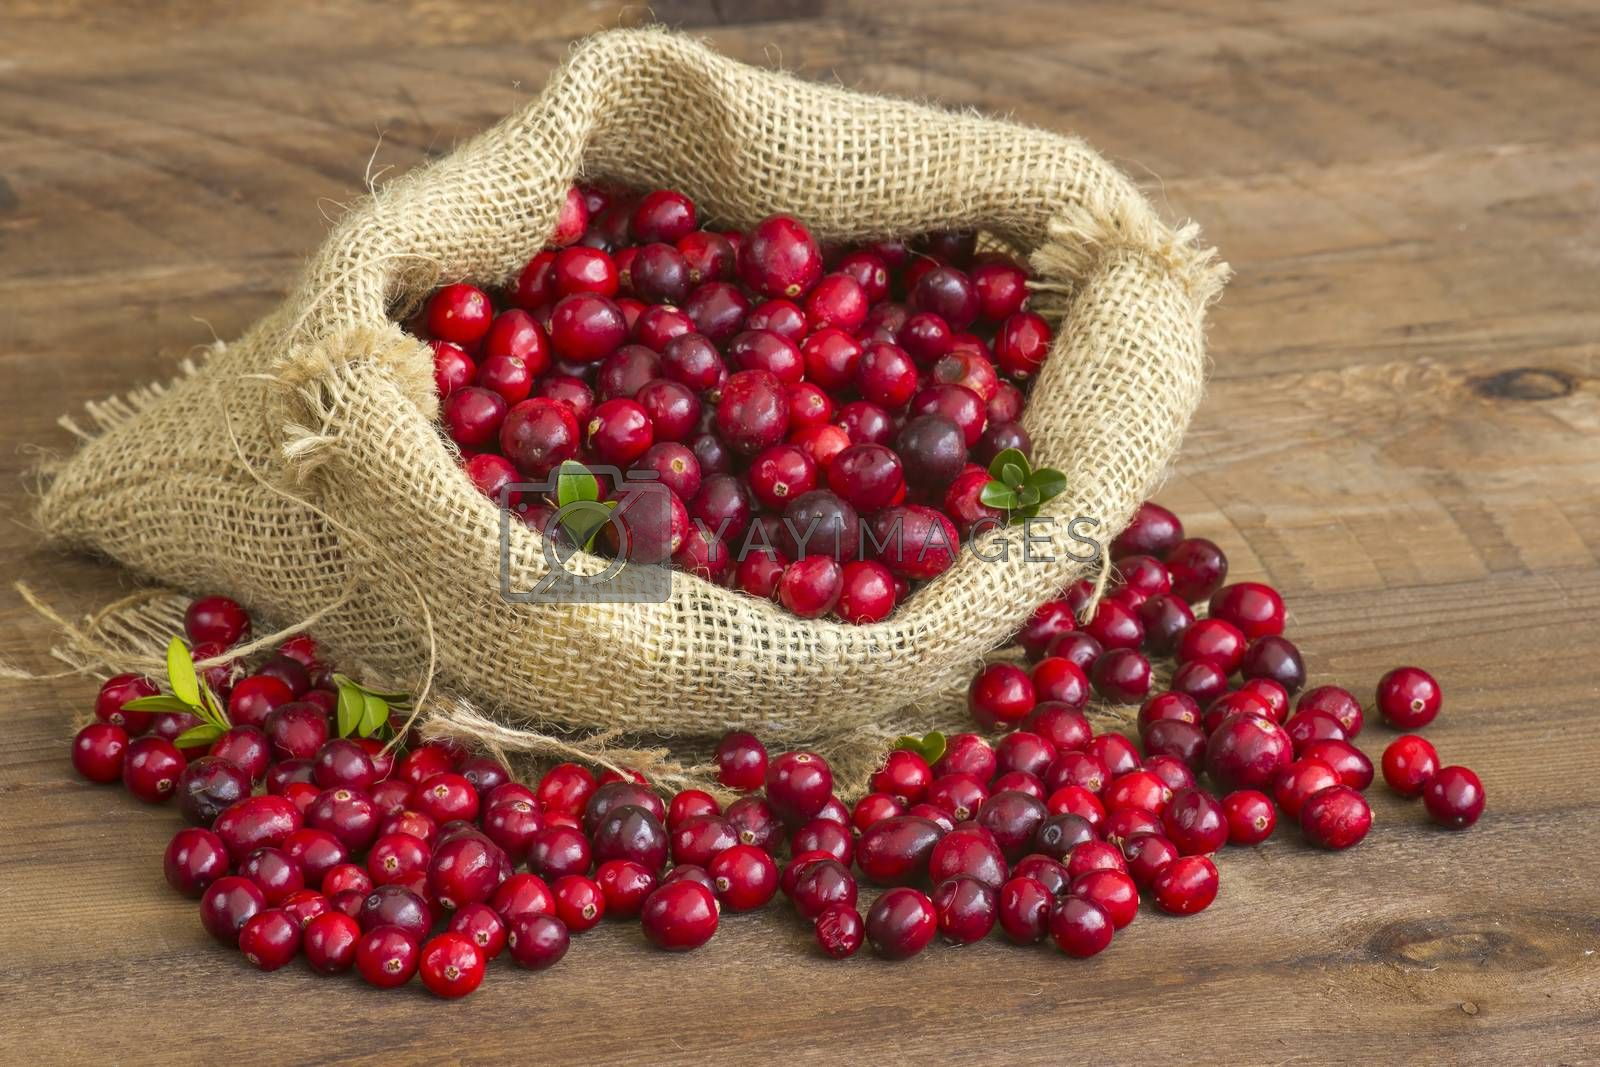 Cranberries in a bag on wooden background.